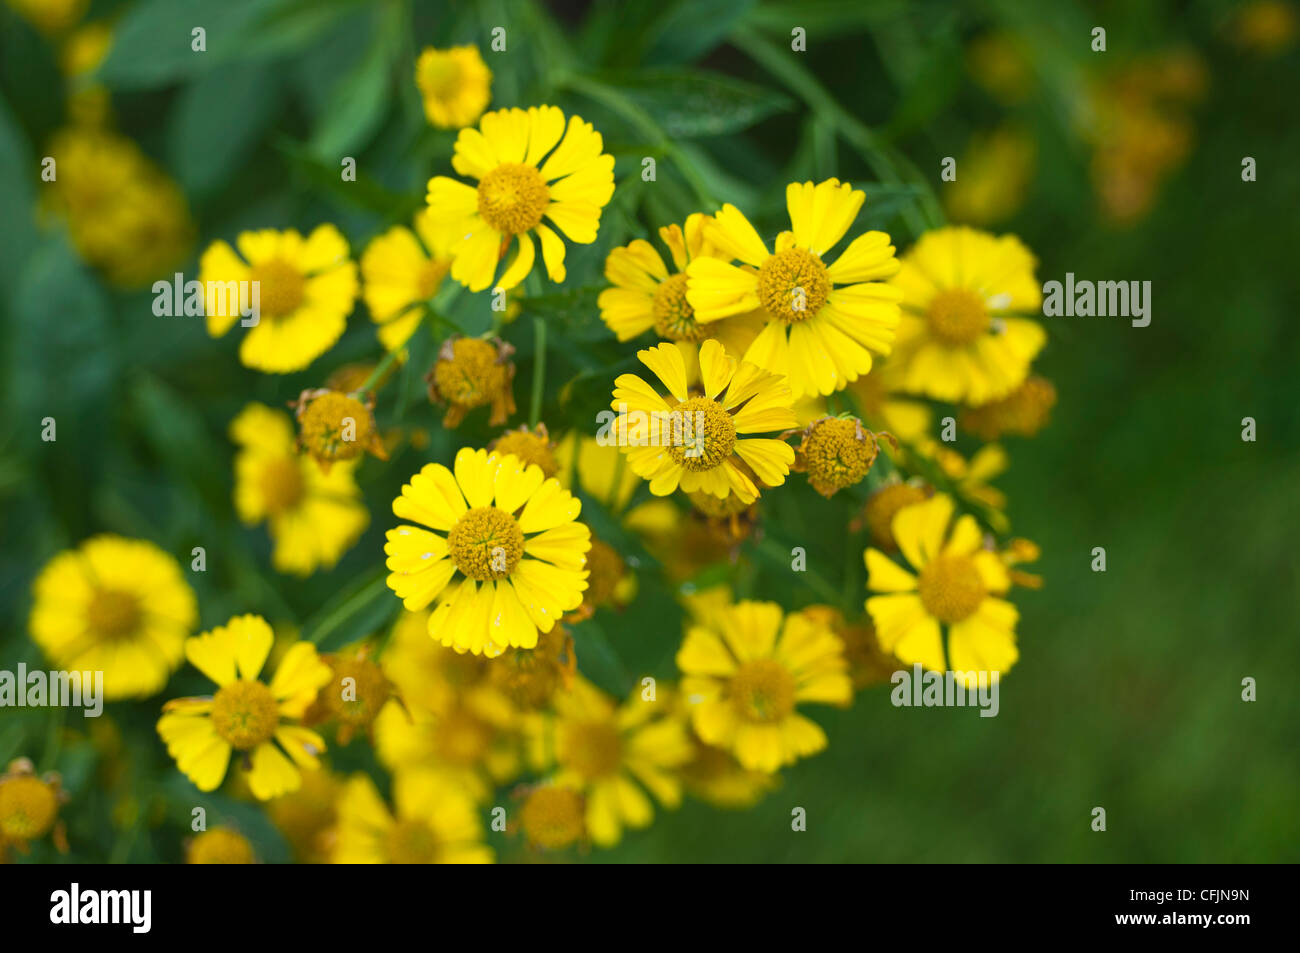 Yellow flowers of Helenium x Kanaria,Canary Sneezeweed,, Asteraceae - Stock Image